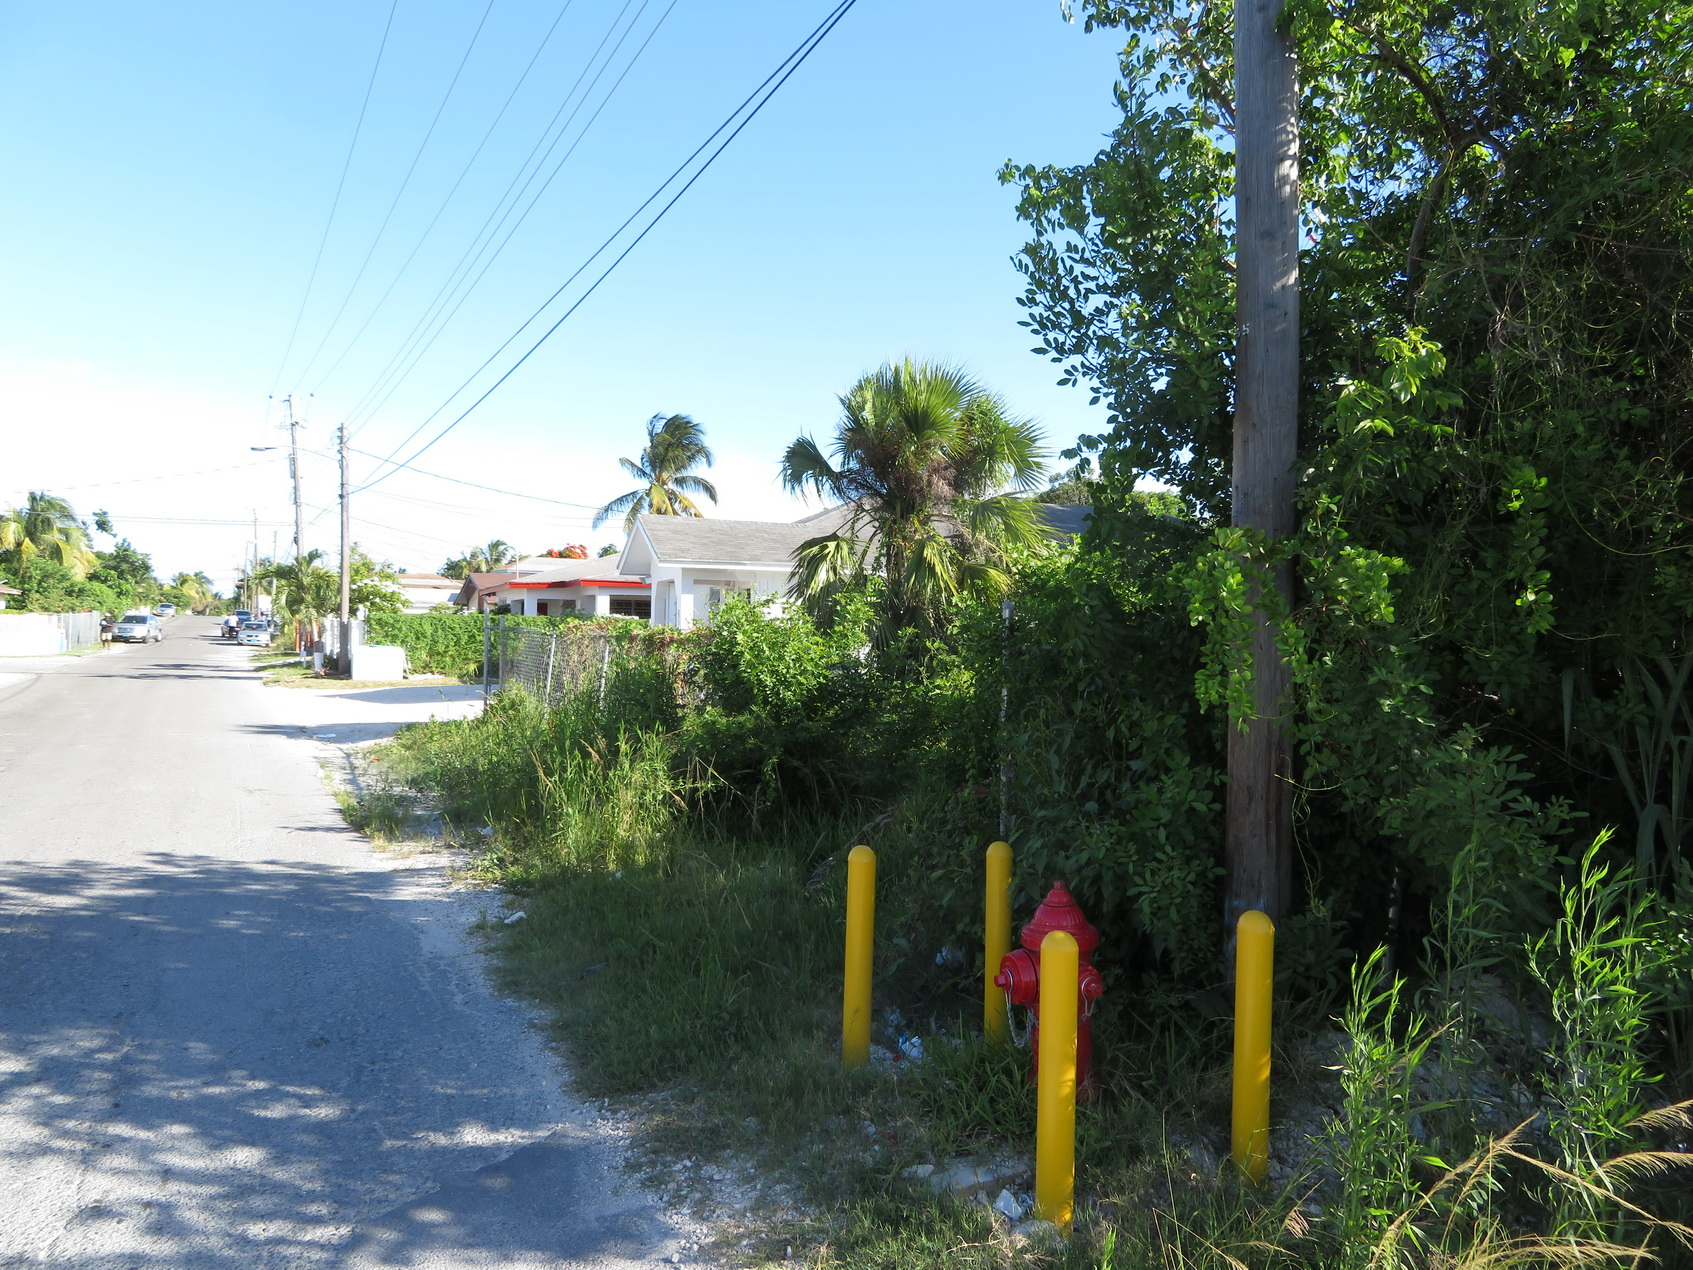 Land for Sale at Single Family lot in Pinewood Gardens/Joan's Heights off East Street in South Nassau Pinewood Gardens, Nassau And Paradise Island, Bahamas